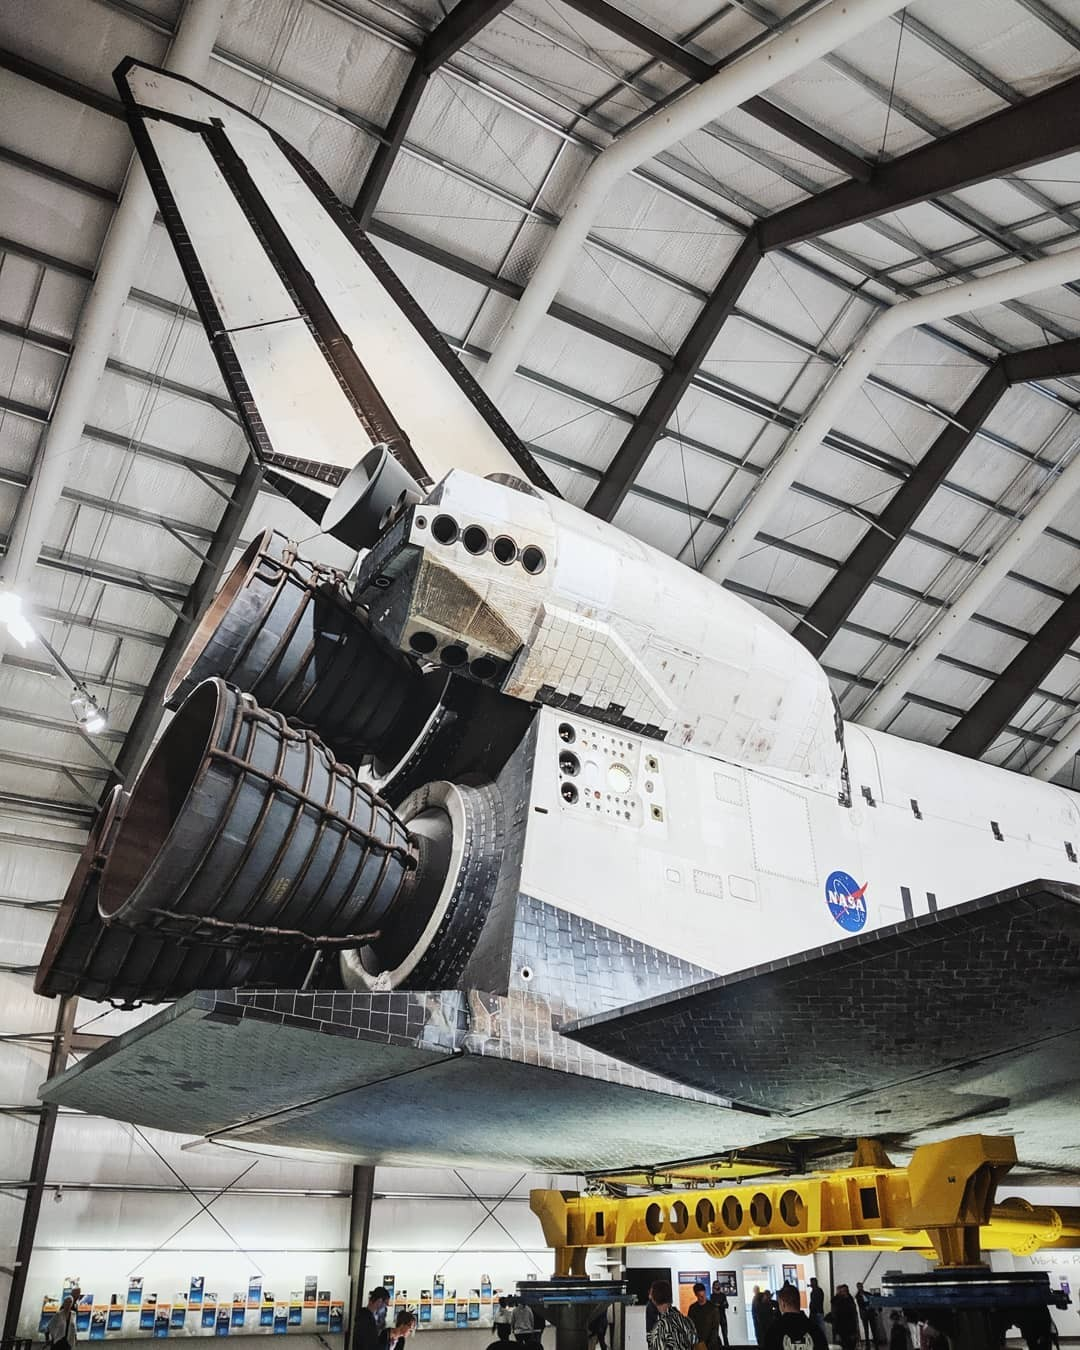 The Endeavour is easily …